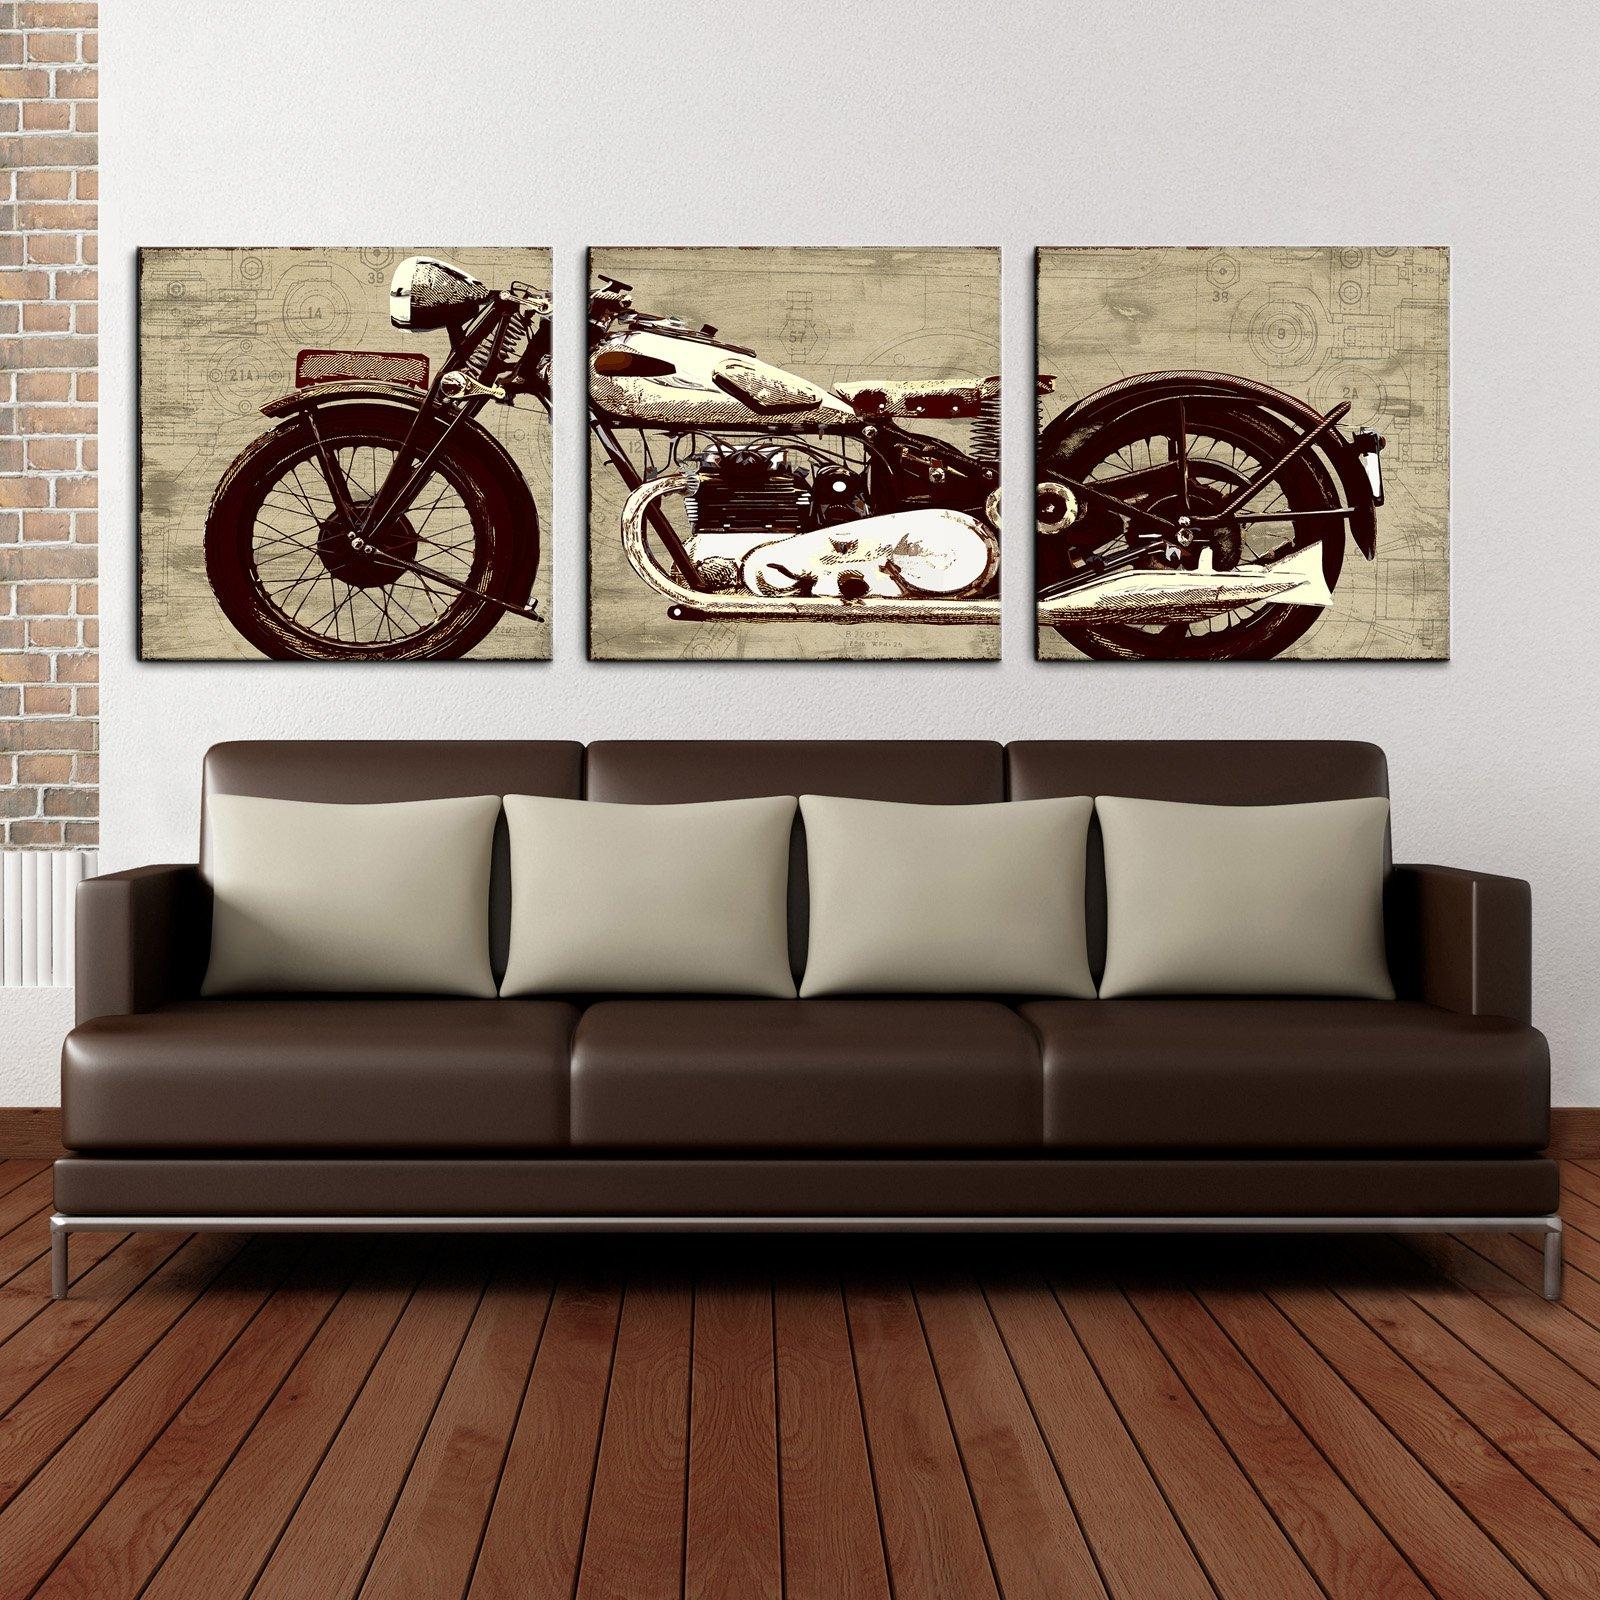 Motorcycle 24 X 72 Canvas Art Print Triptych – Walmart With Regard To Three Piece Canvas Wall Art (Image 14 of 20)